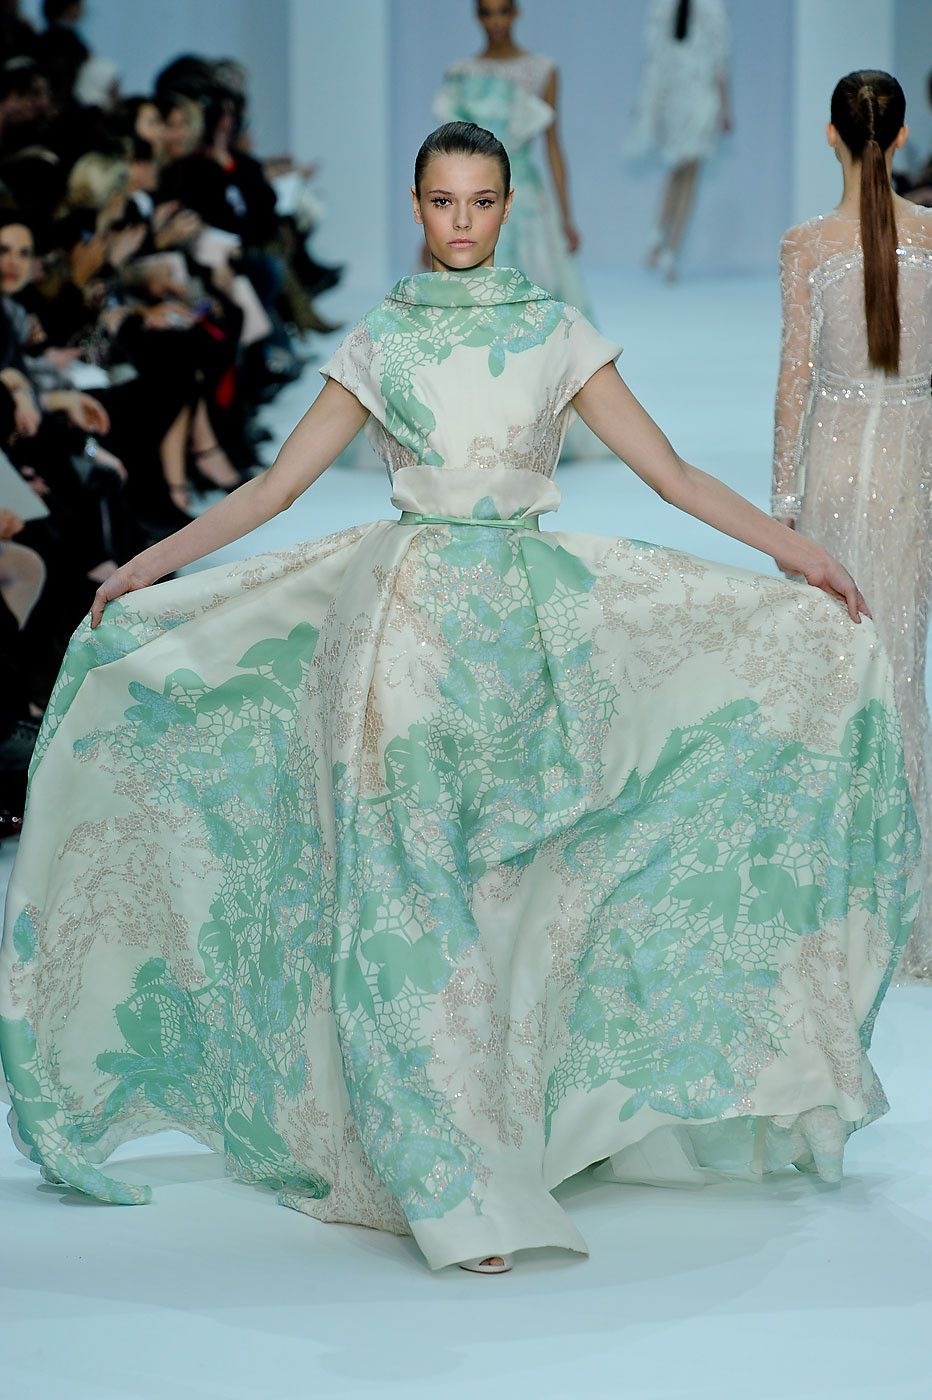 Elie Saab Couture Spring 2012 - The Most Mind-Blowing Couture Gowns of the Last Five Years - Photos